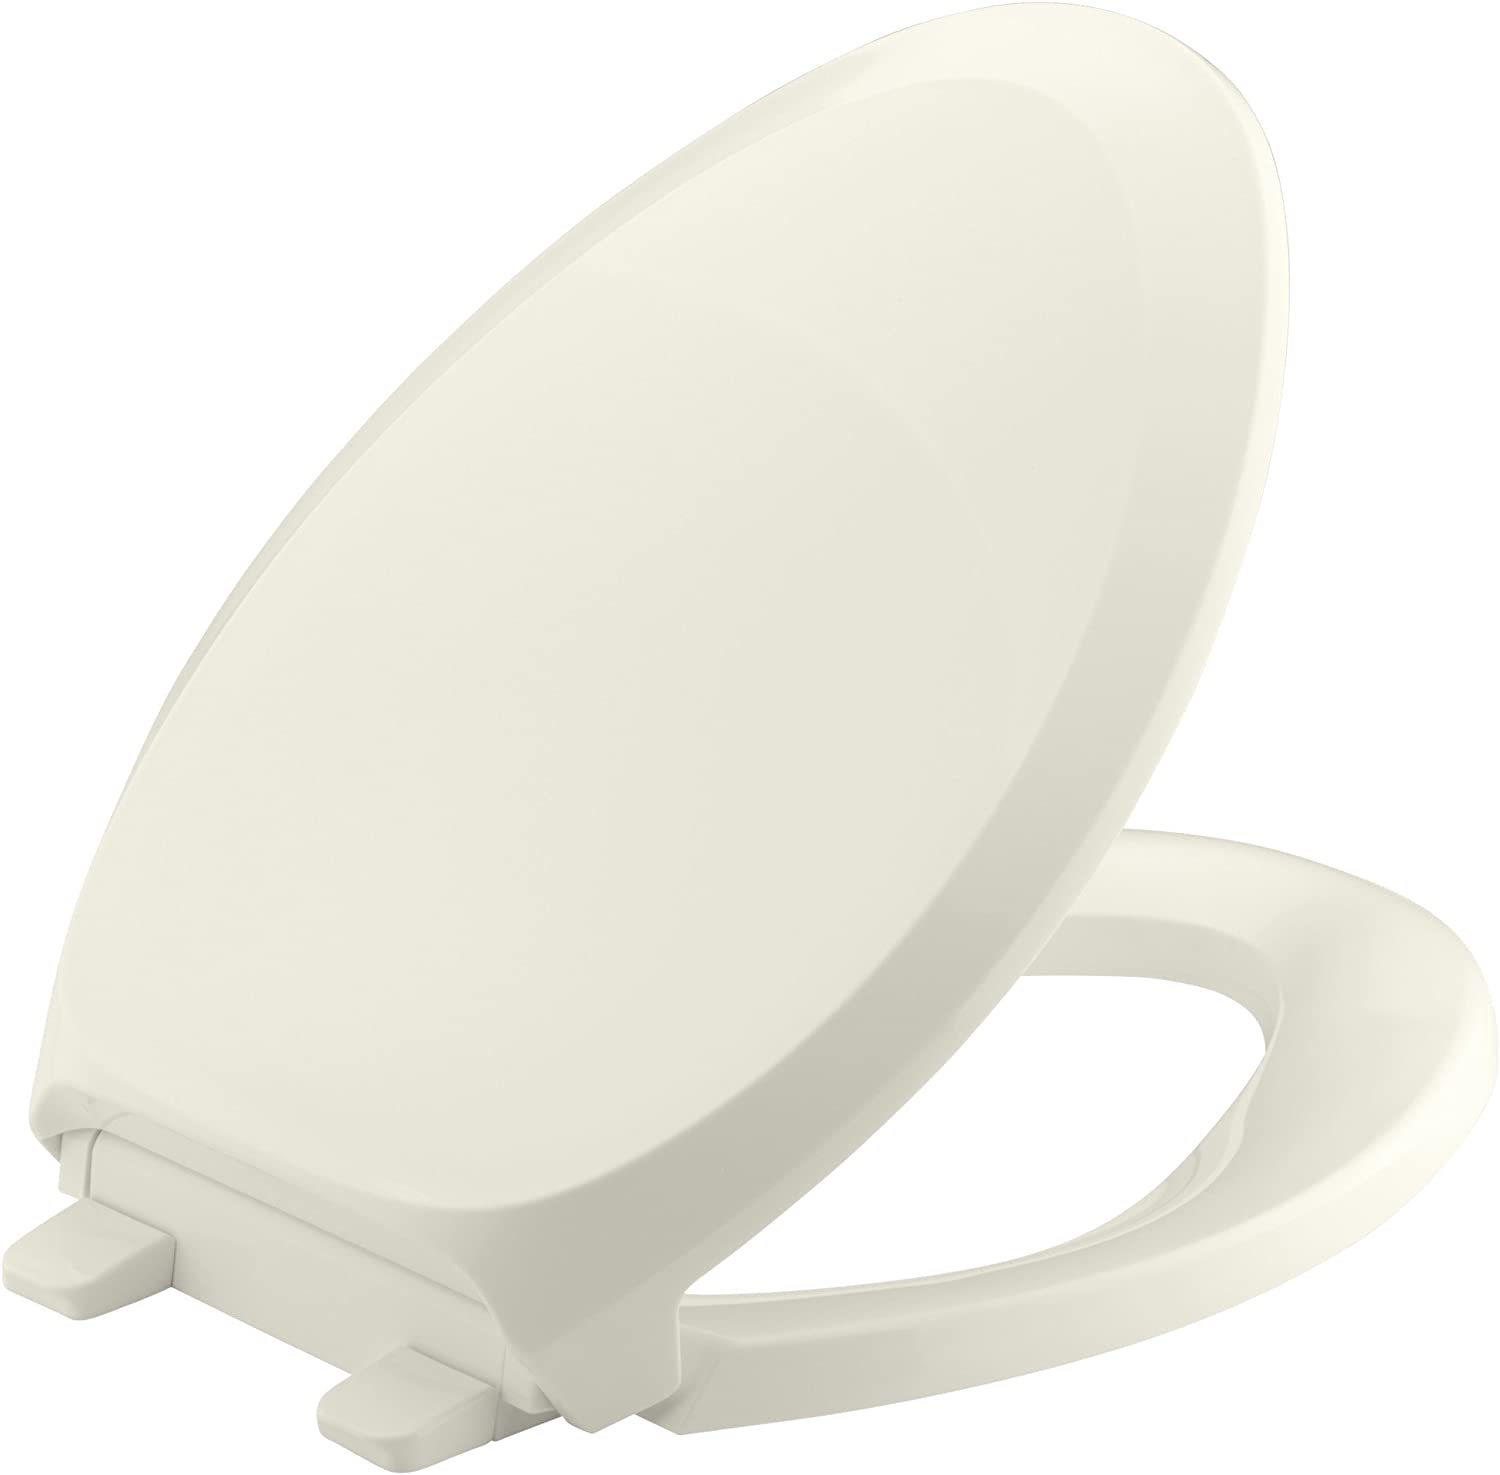 Kohler K 4713 96 French Curve Quiet Close With Grip Tight Bumpers Elongated Toilet Seat Biscuit Amazon Co Uk Diy Tools